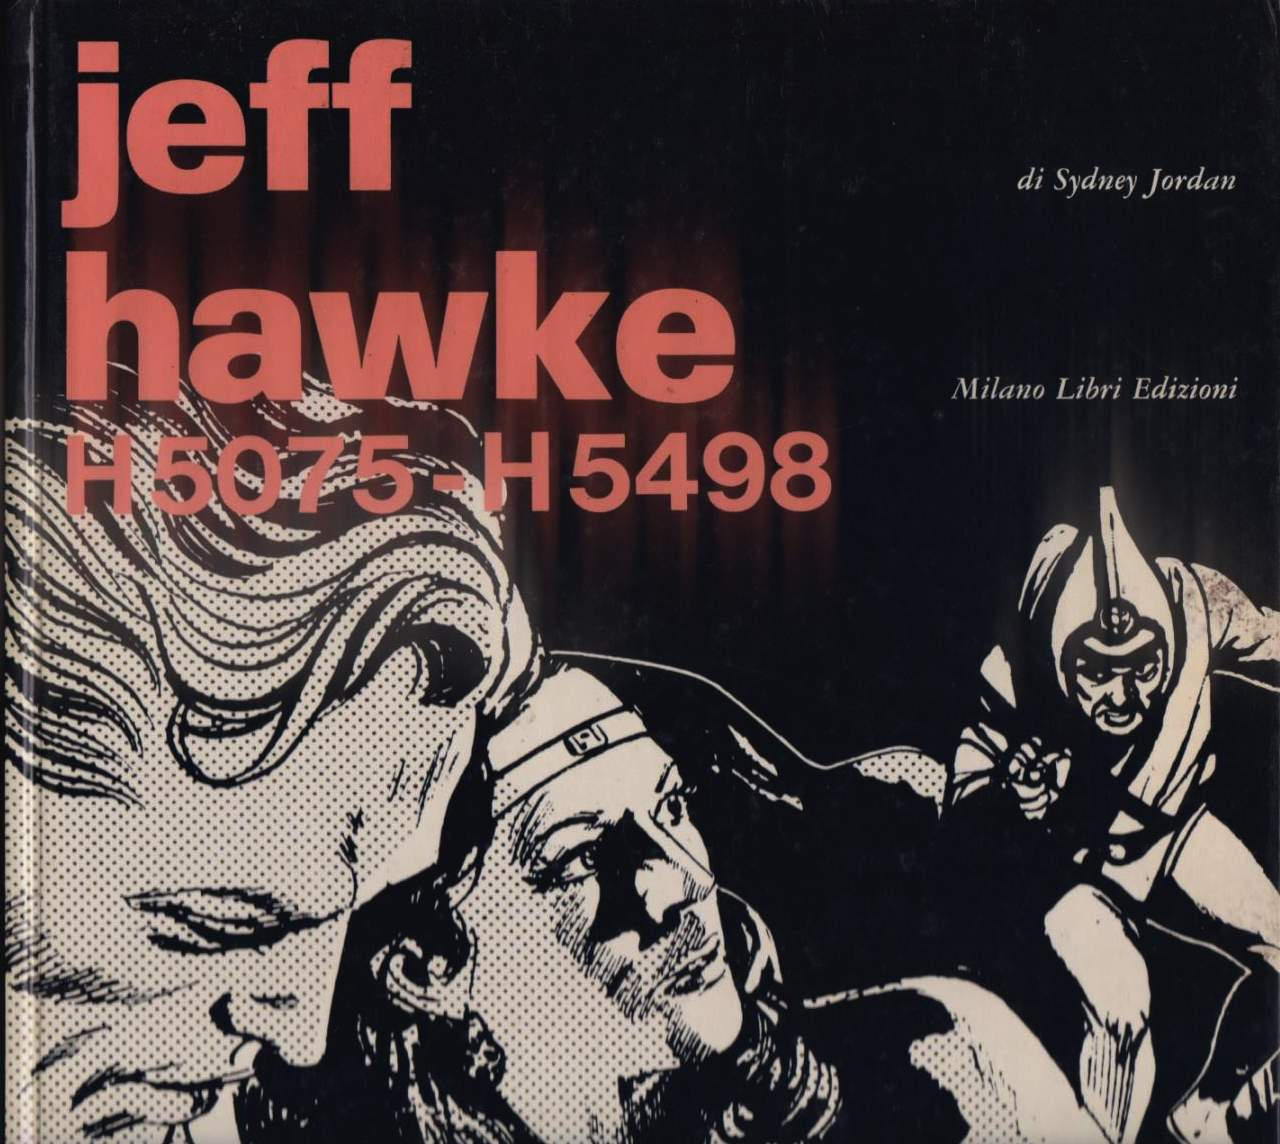 JEFF HAWKE BY SIDNEY JORDAN